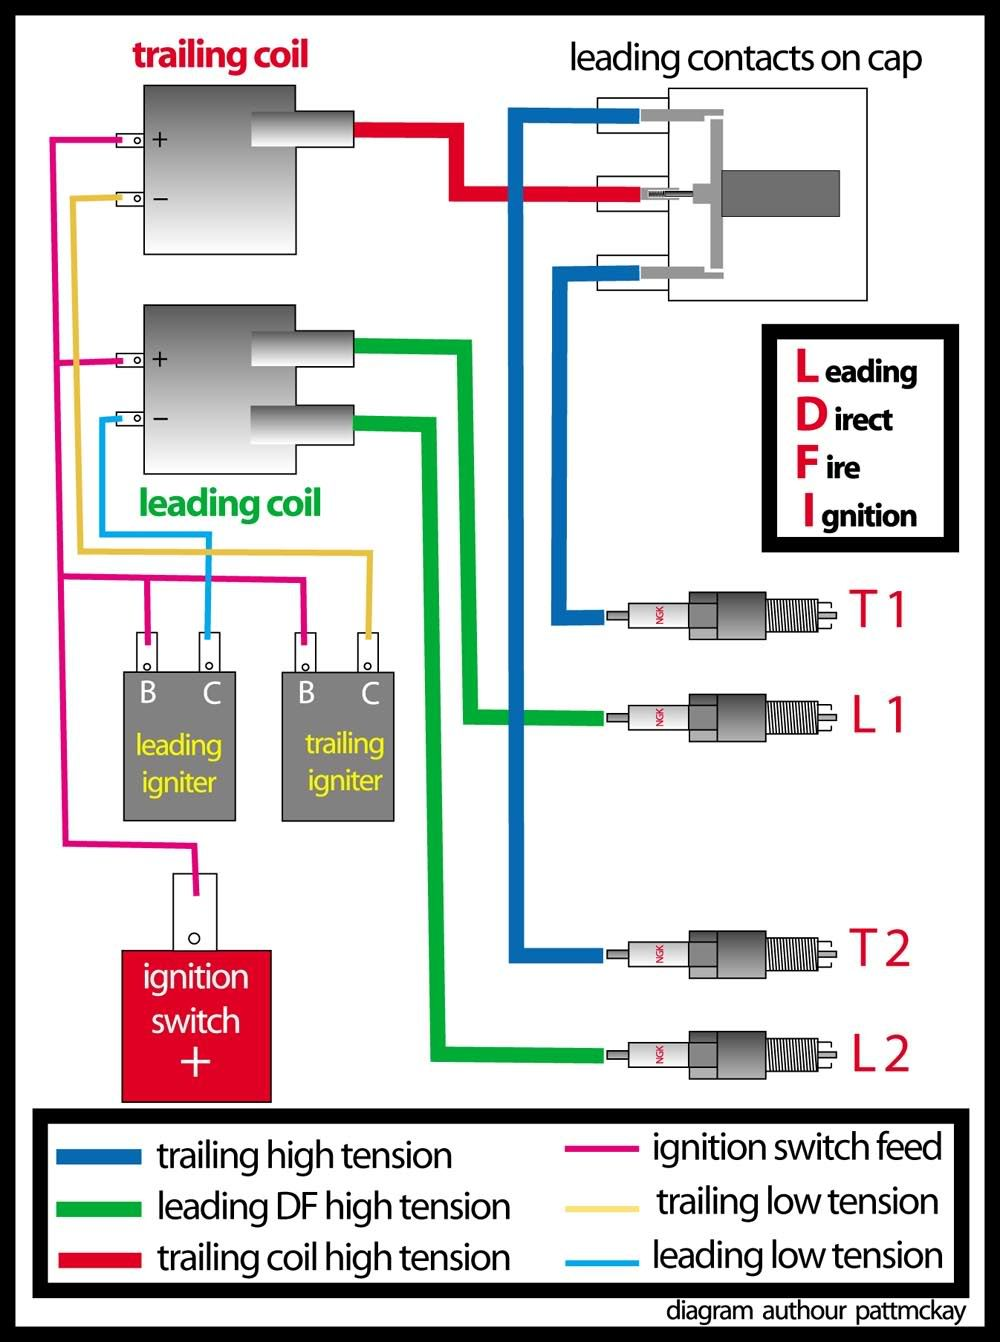 f51a9f8accfbb2accd16cb3edbec5003 here is a simple wiring diagram for a single leading direct fire n-tune wiring diagram at edmiracle.co